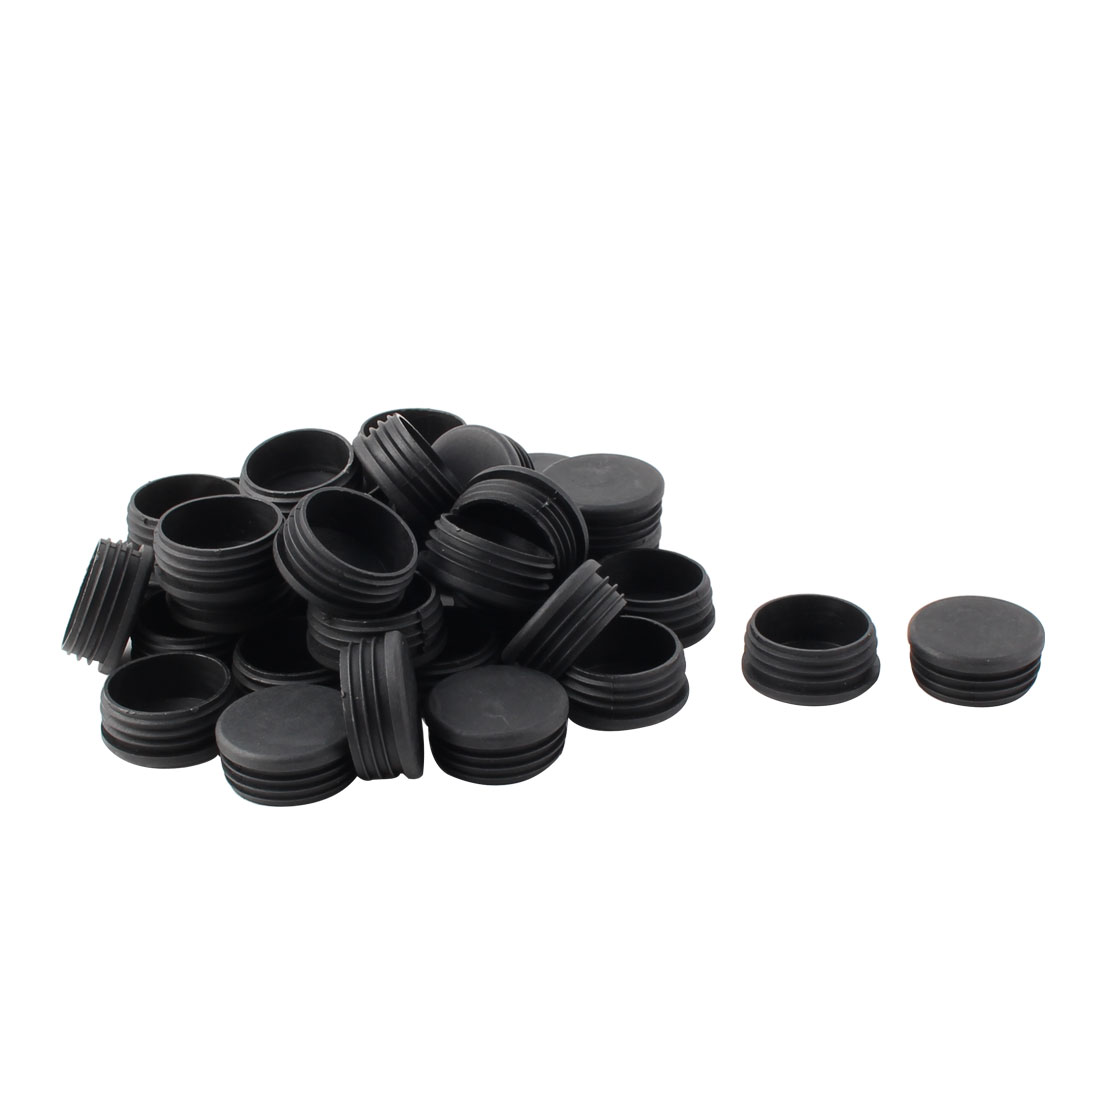 Plastic Round Tube Insert Blanking End Protectors Caps Black 48mm 36 PCS